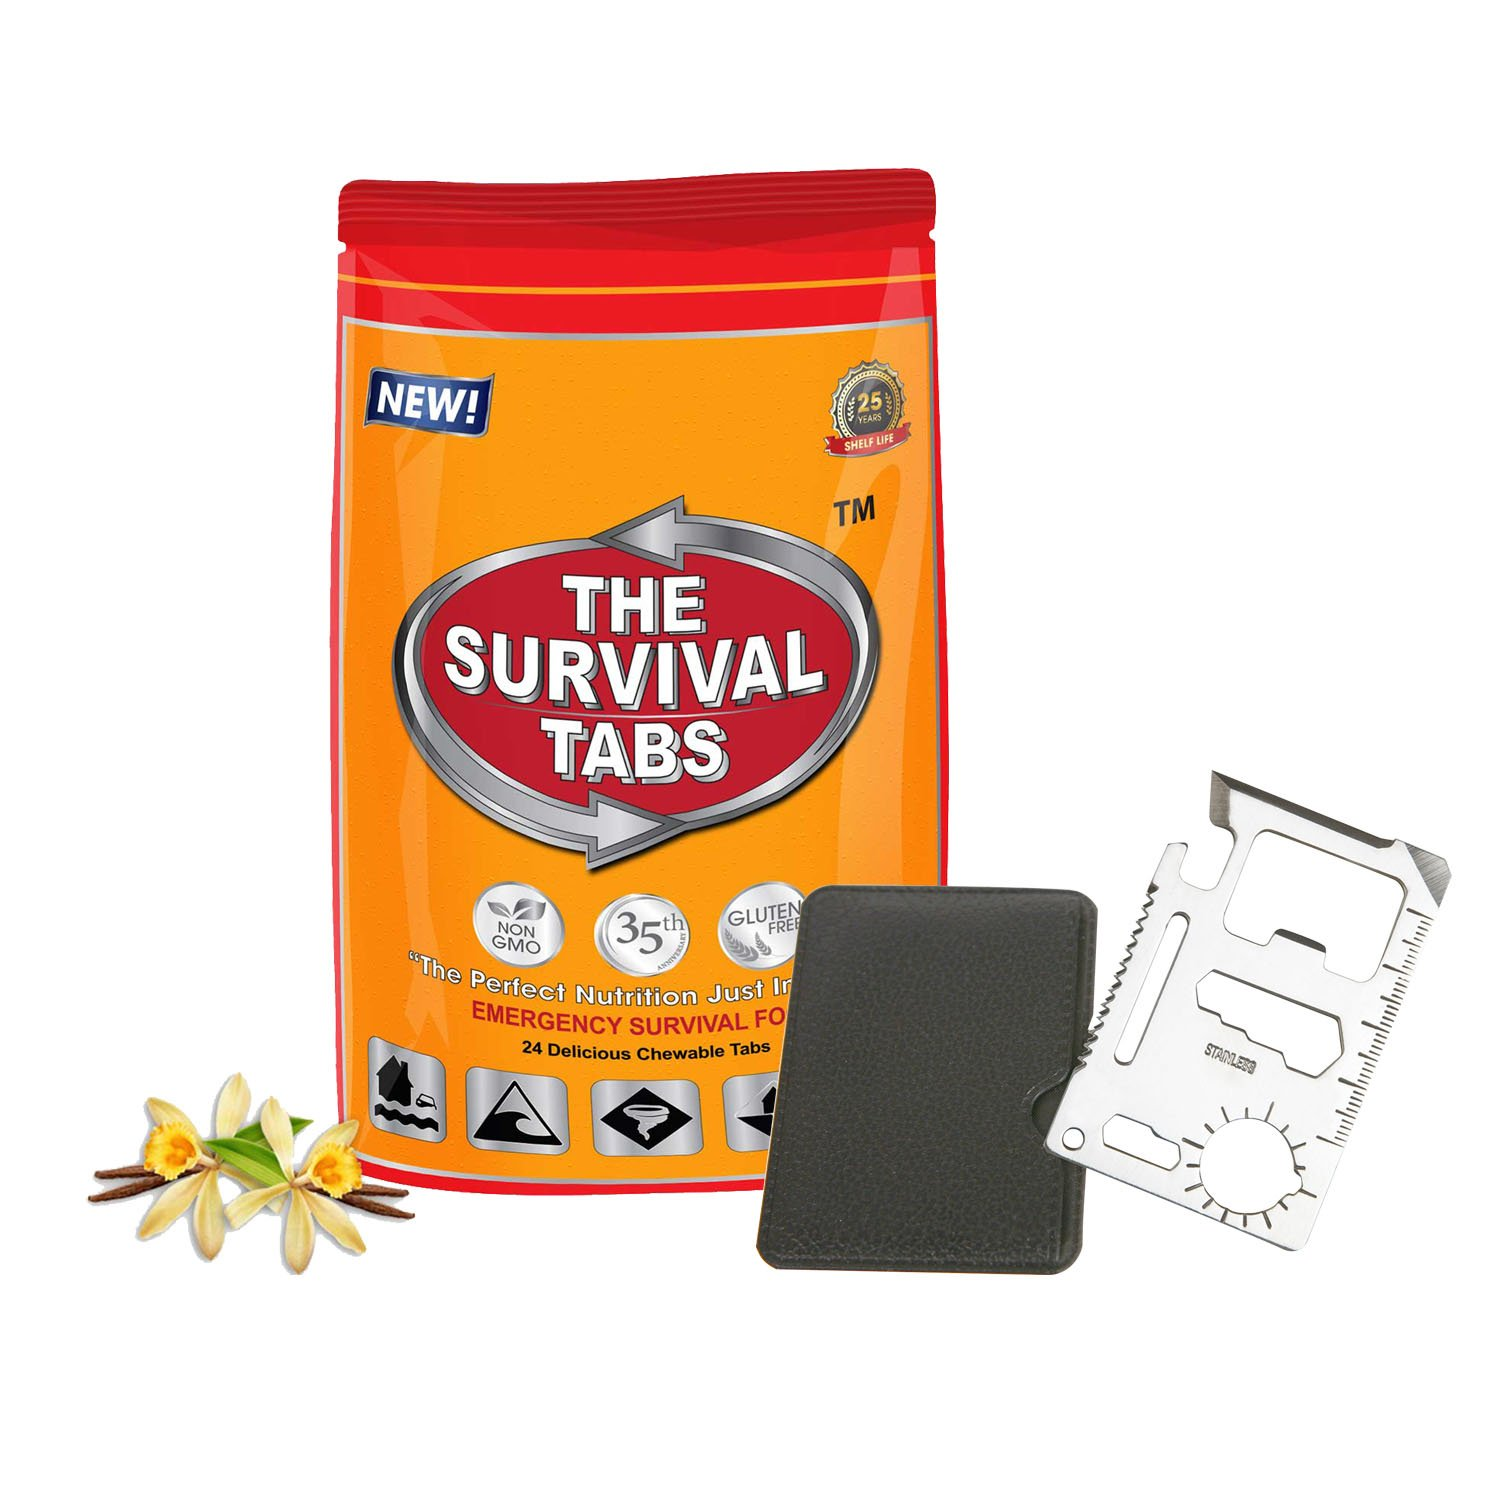 11 in1 Multi Tools Hunting Survival Camping Pocket Military Credit Card Knife + Survival Meal Ration 2-Day supply 24 tabs Ultimate Bugout Food 25 Years shelf life Gluten Free and Non-GMO - Vanilla Flavor lavleen kaur and narinder deep singh evaluating kissan credit card scheme in punjab india